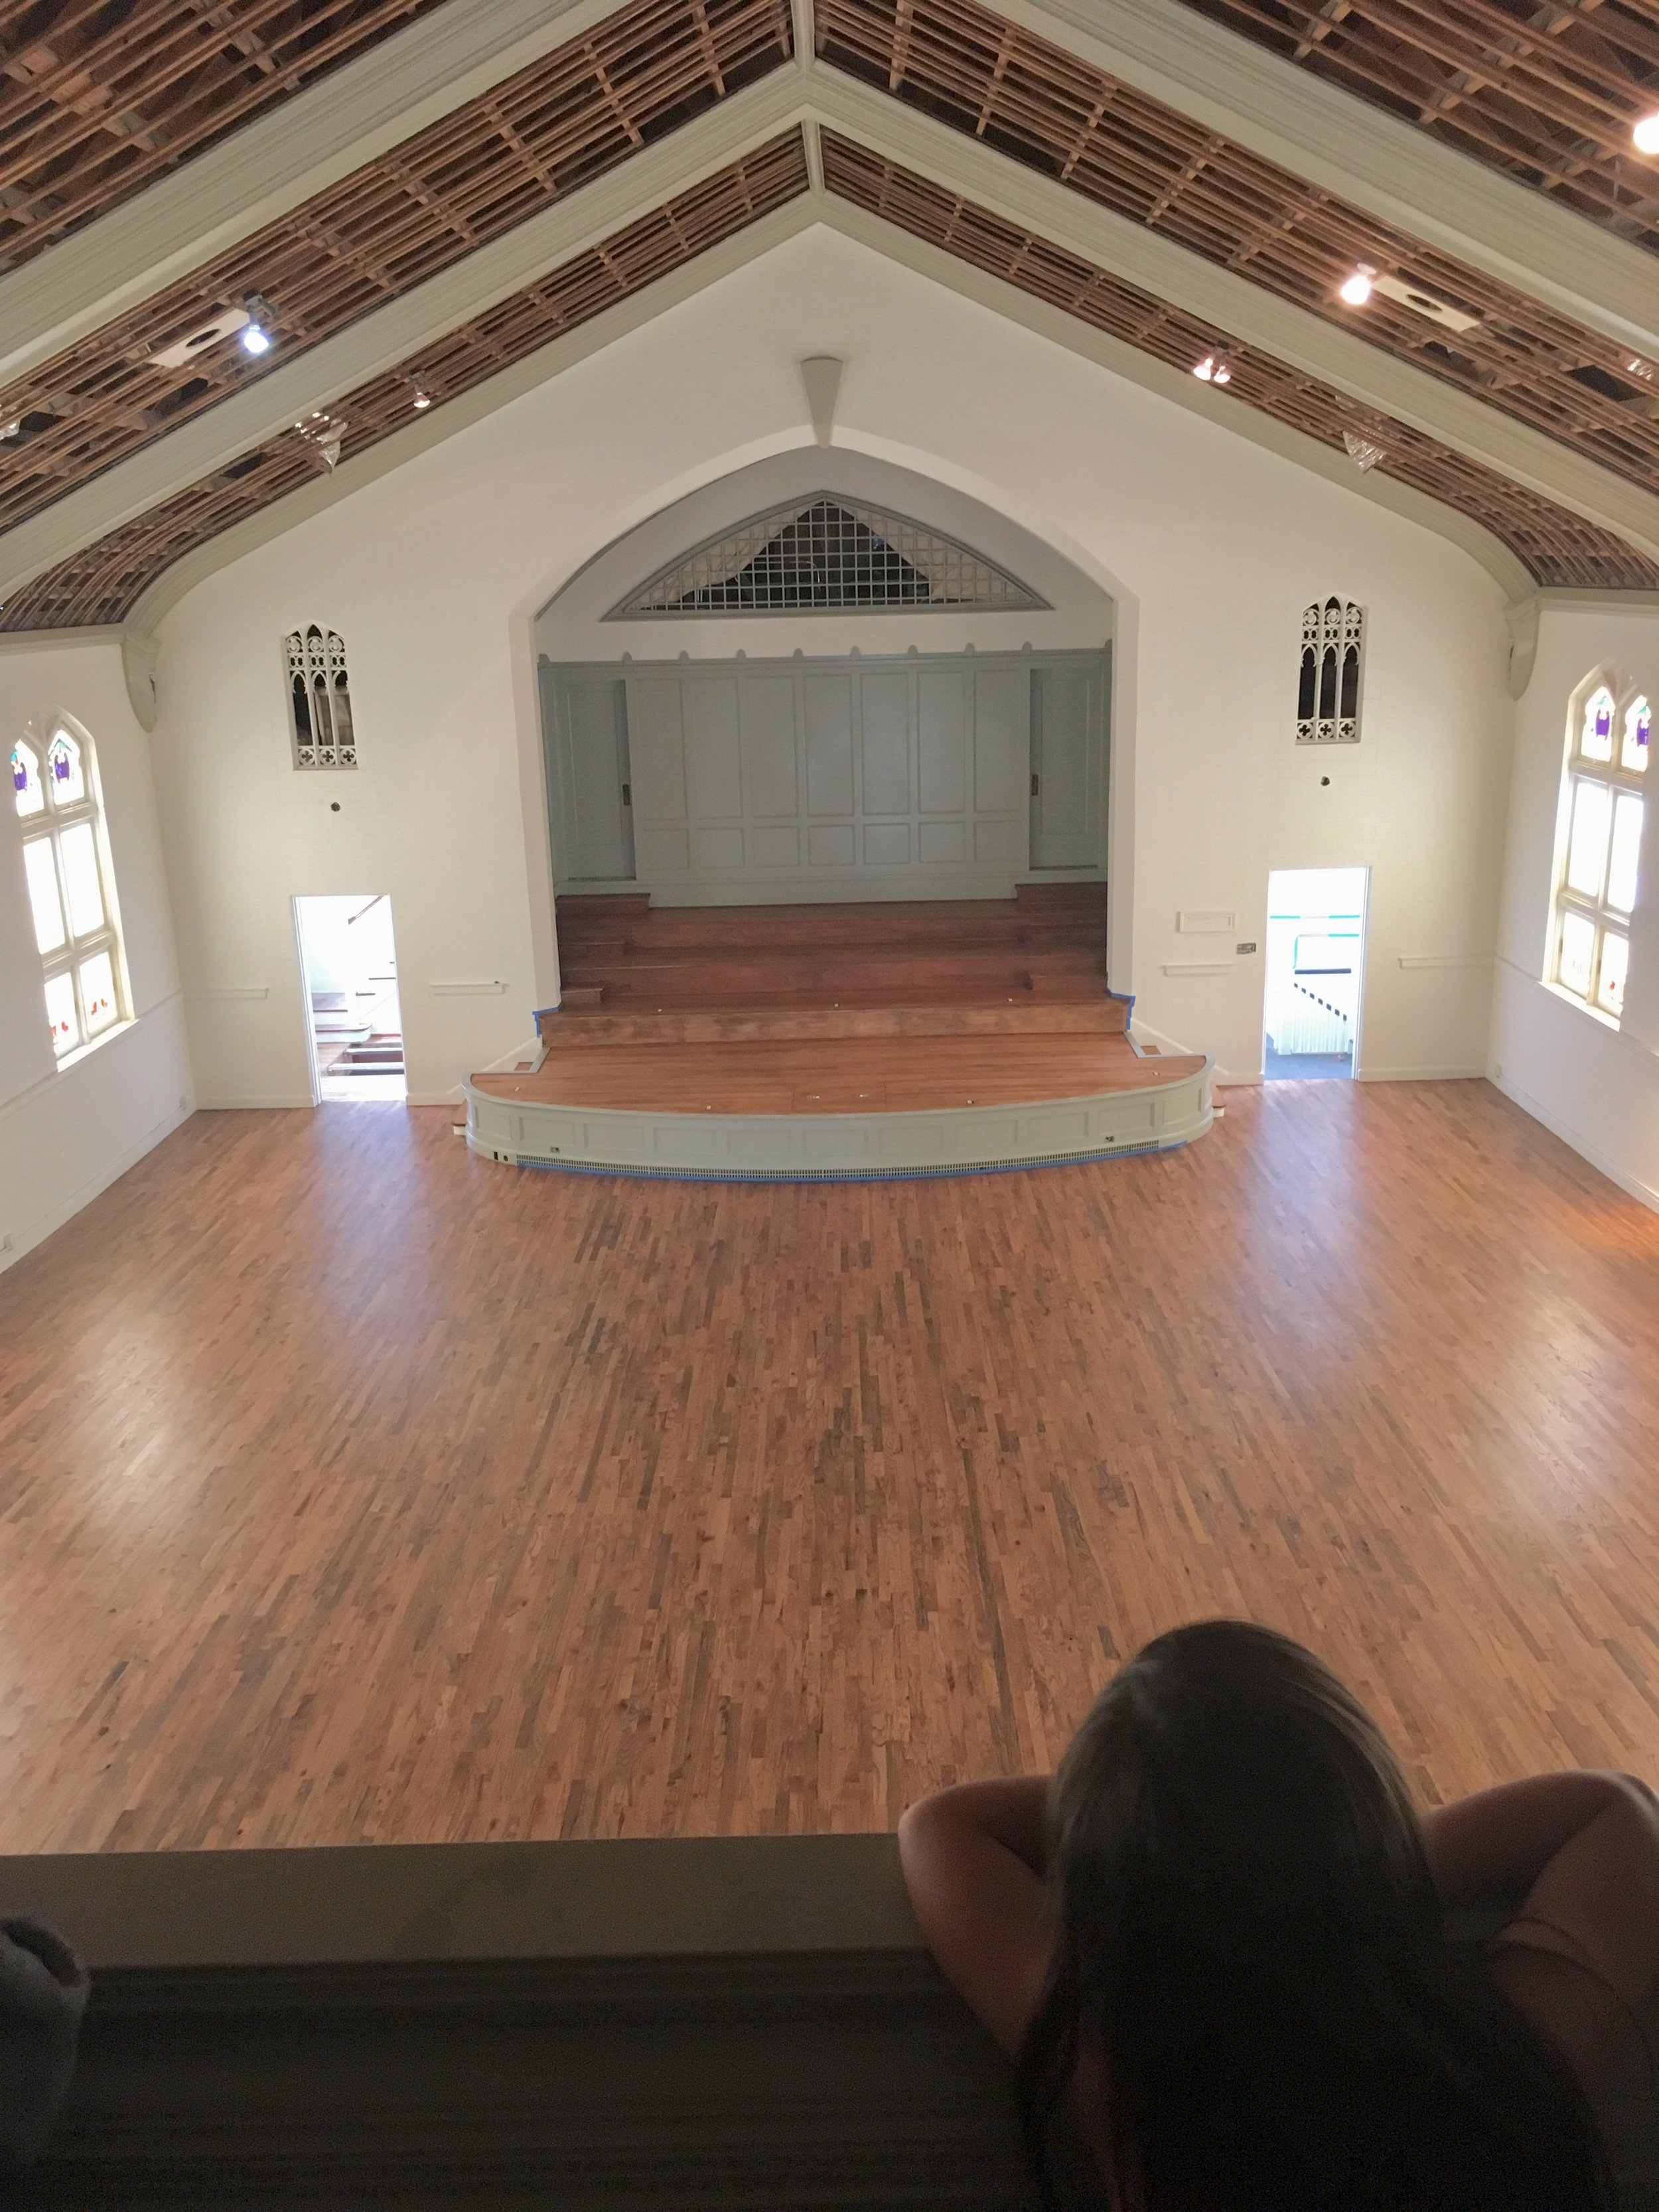 Dreaming of transformation, Arts Mission is a place in Oak Cliff for creative coworking and local performing arts.  Photo Credit: Arts Mission Oak Cliff